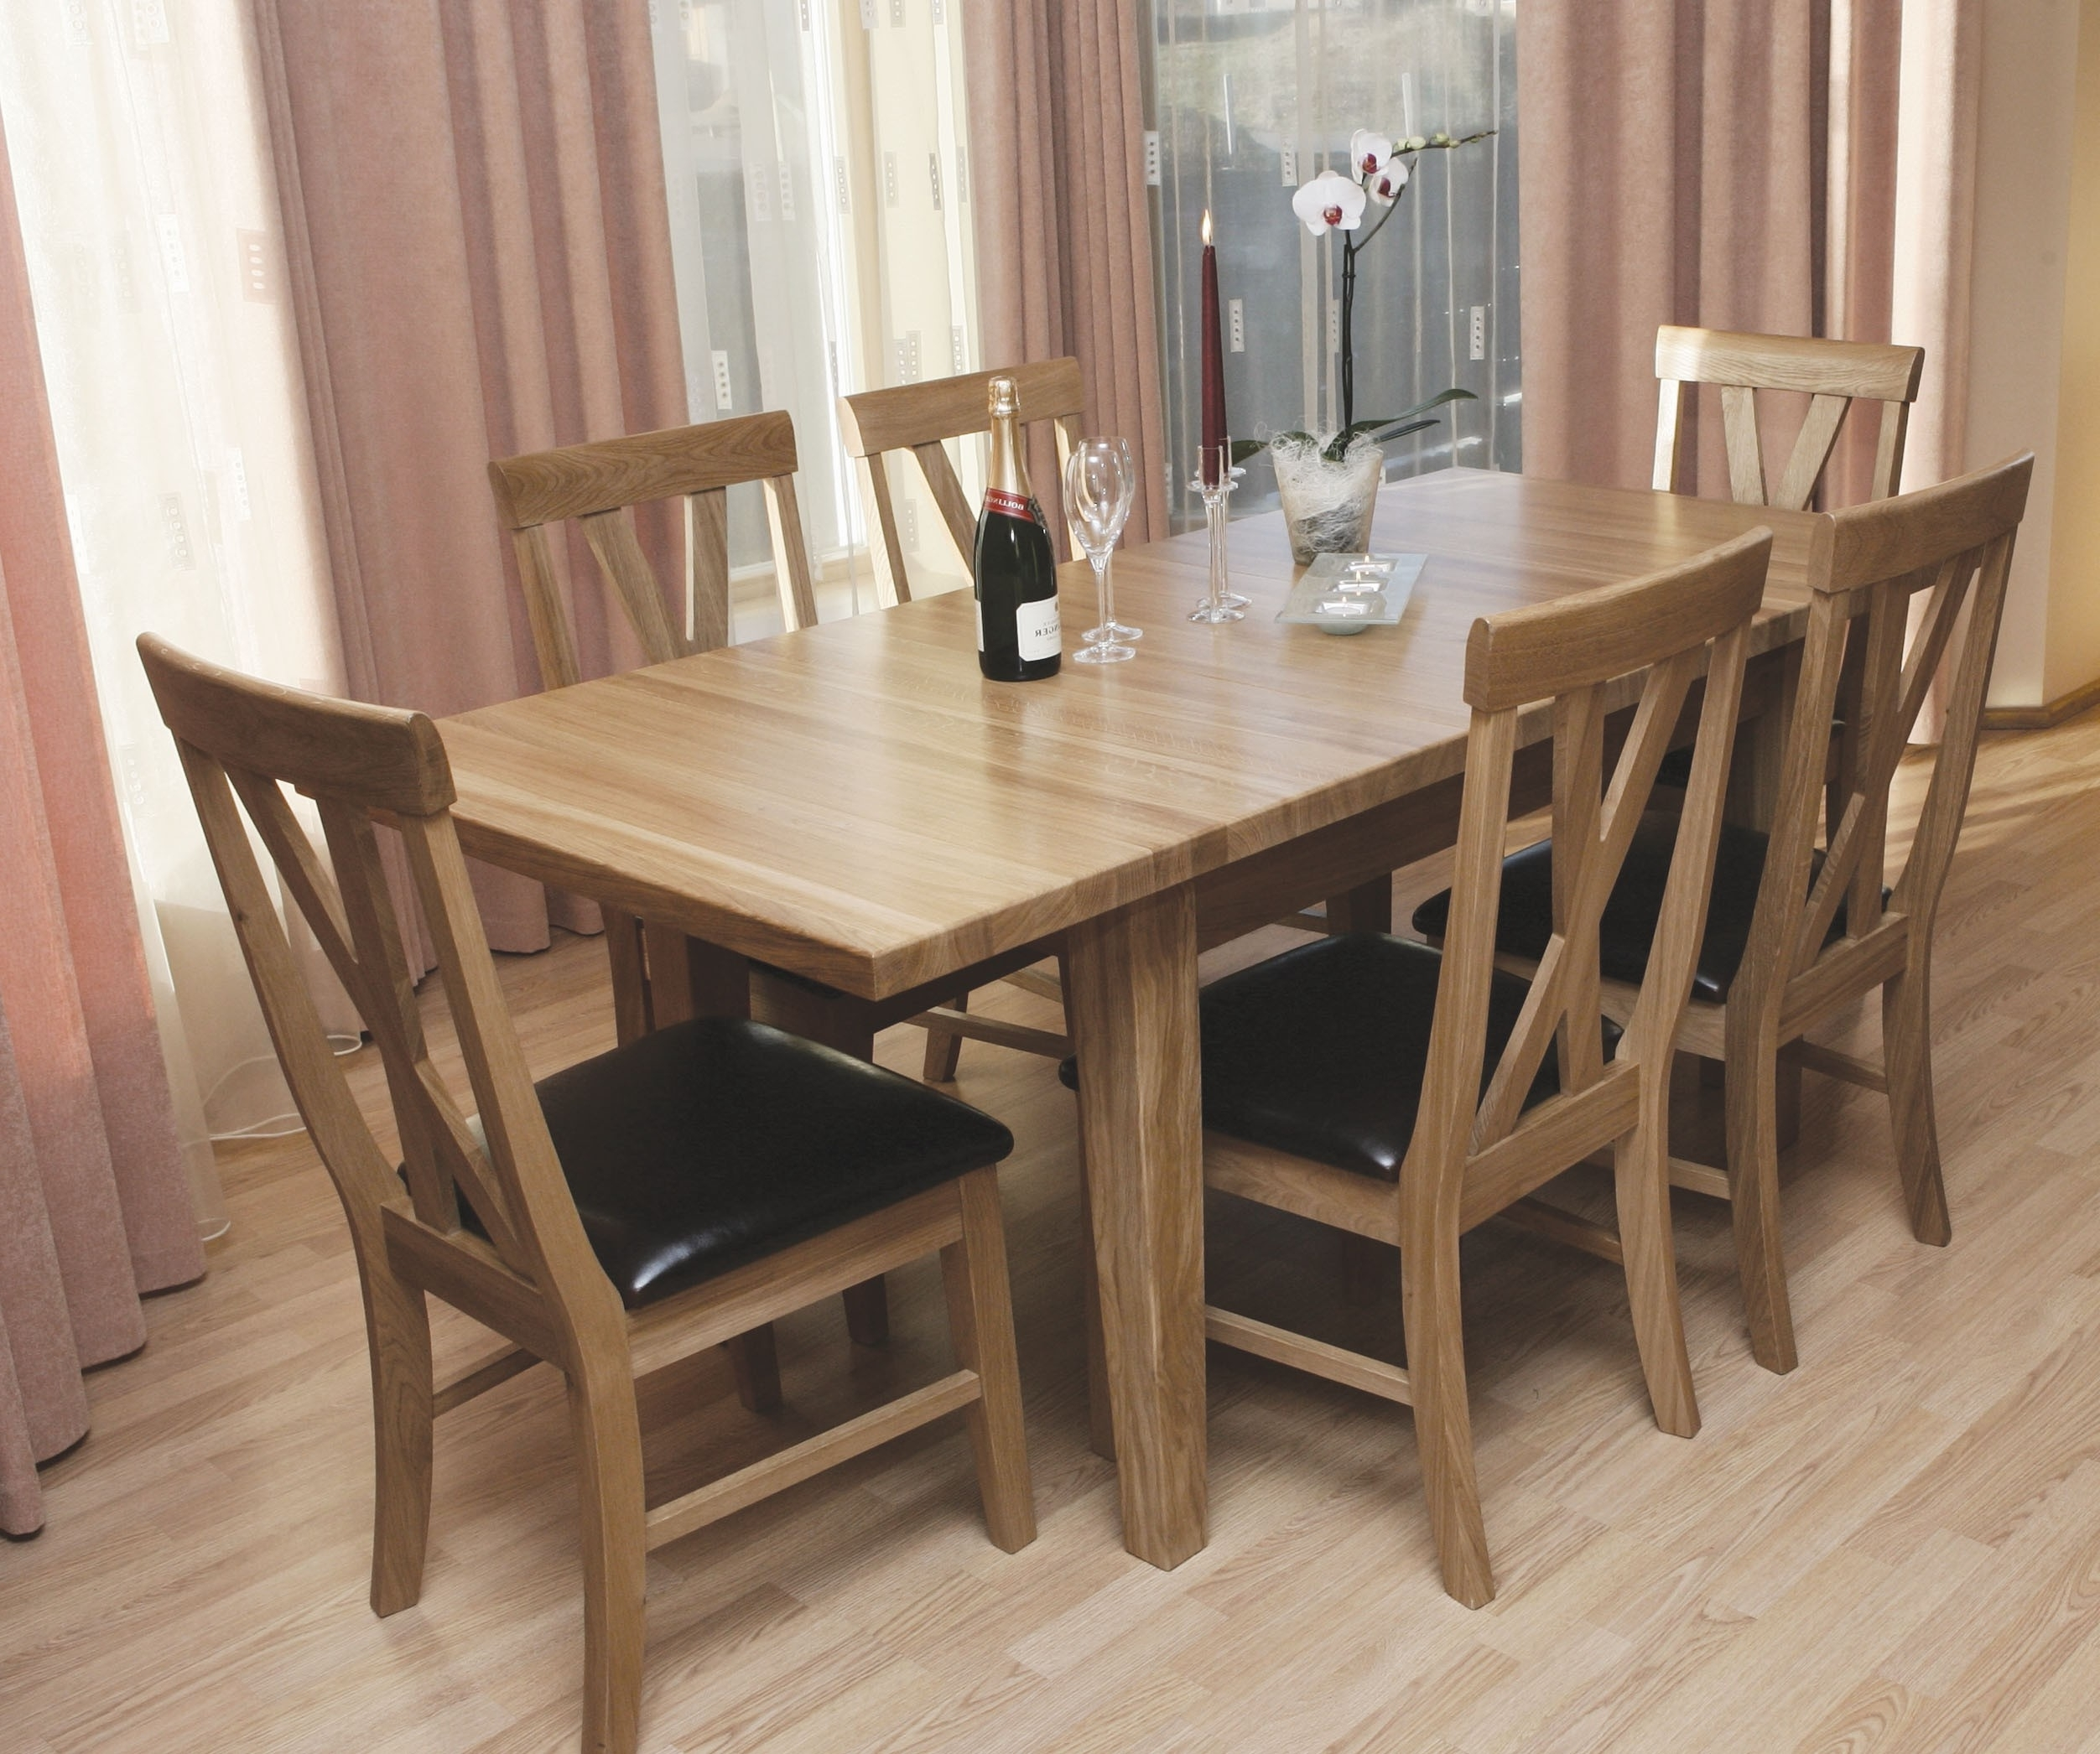 6 Seat Dining Tables for 2018 Tch Warwick 6 Seat Dining Table & Chairs Set Solid Oak - Furniture